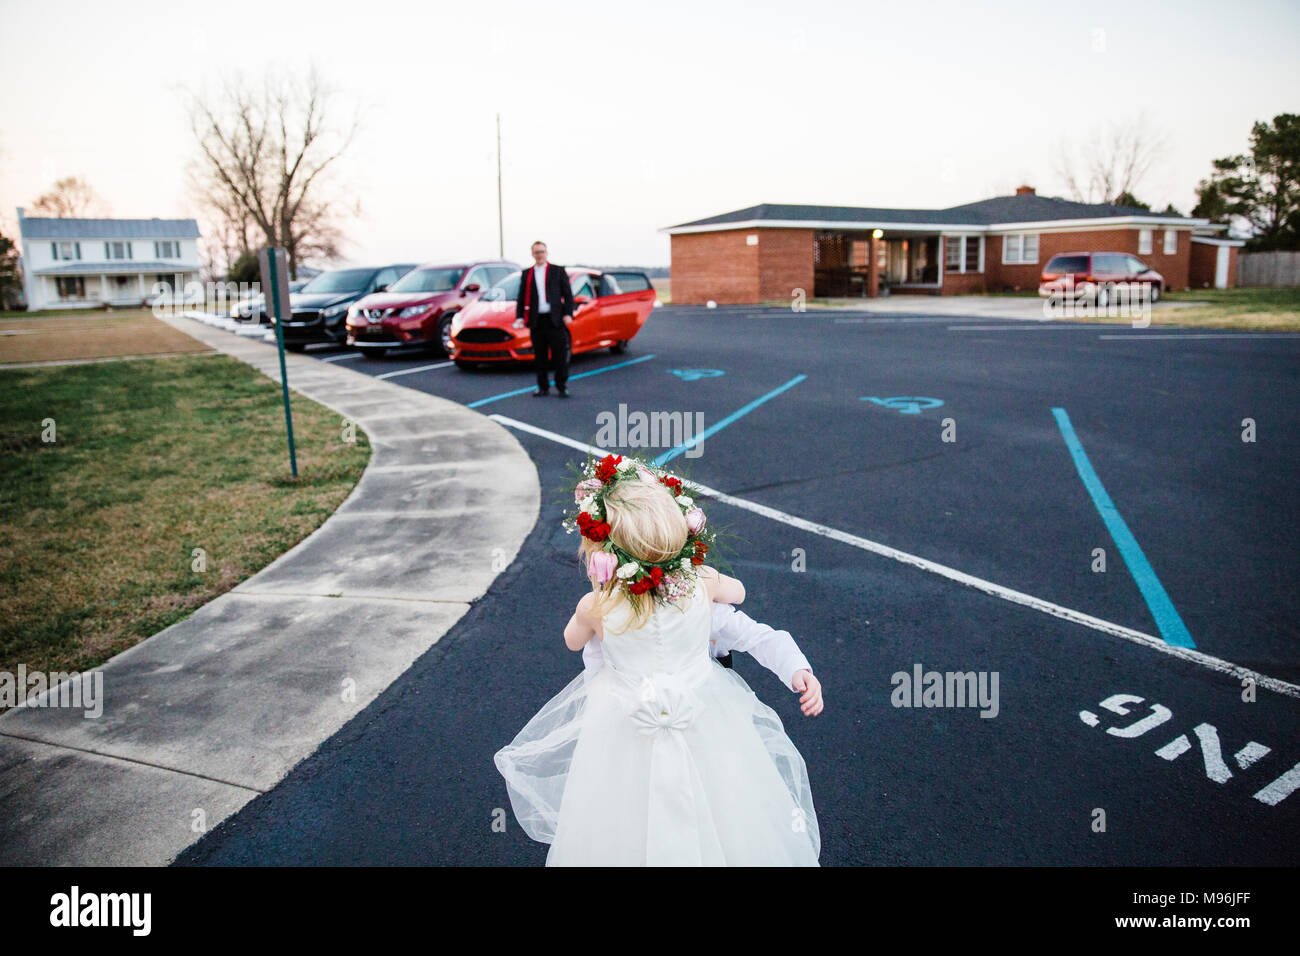 Girl in white dress in car park with flower wreath - Stock Image